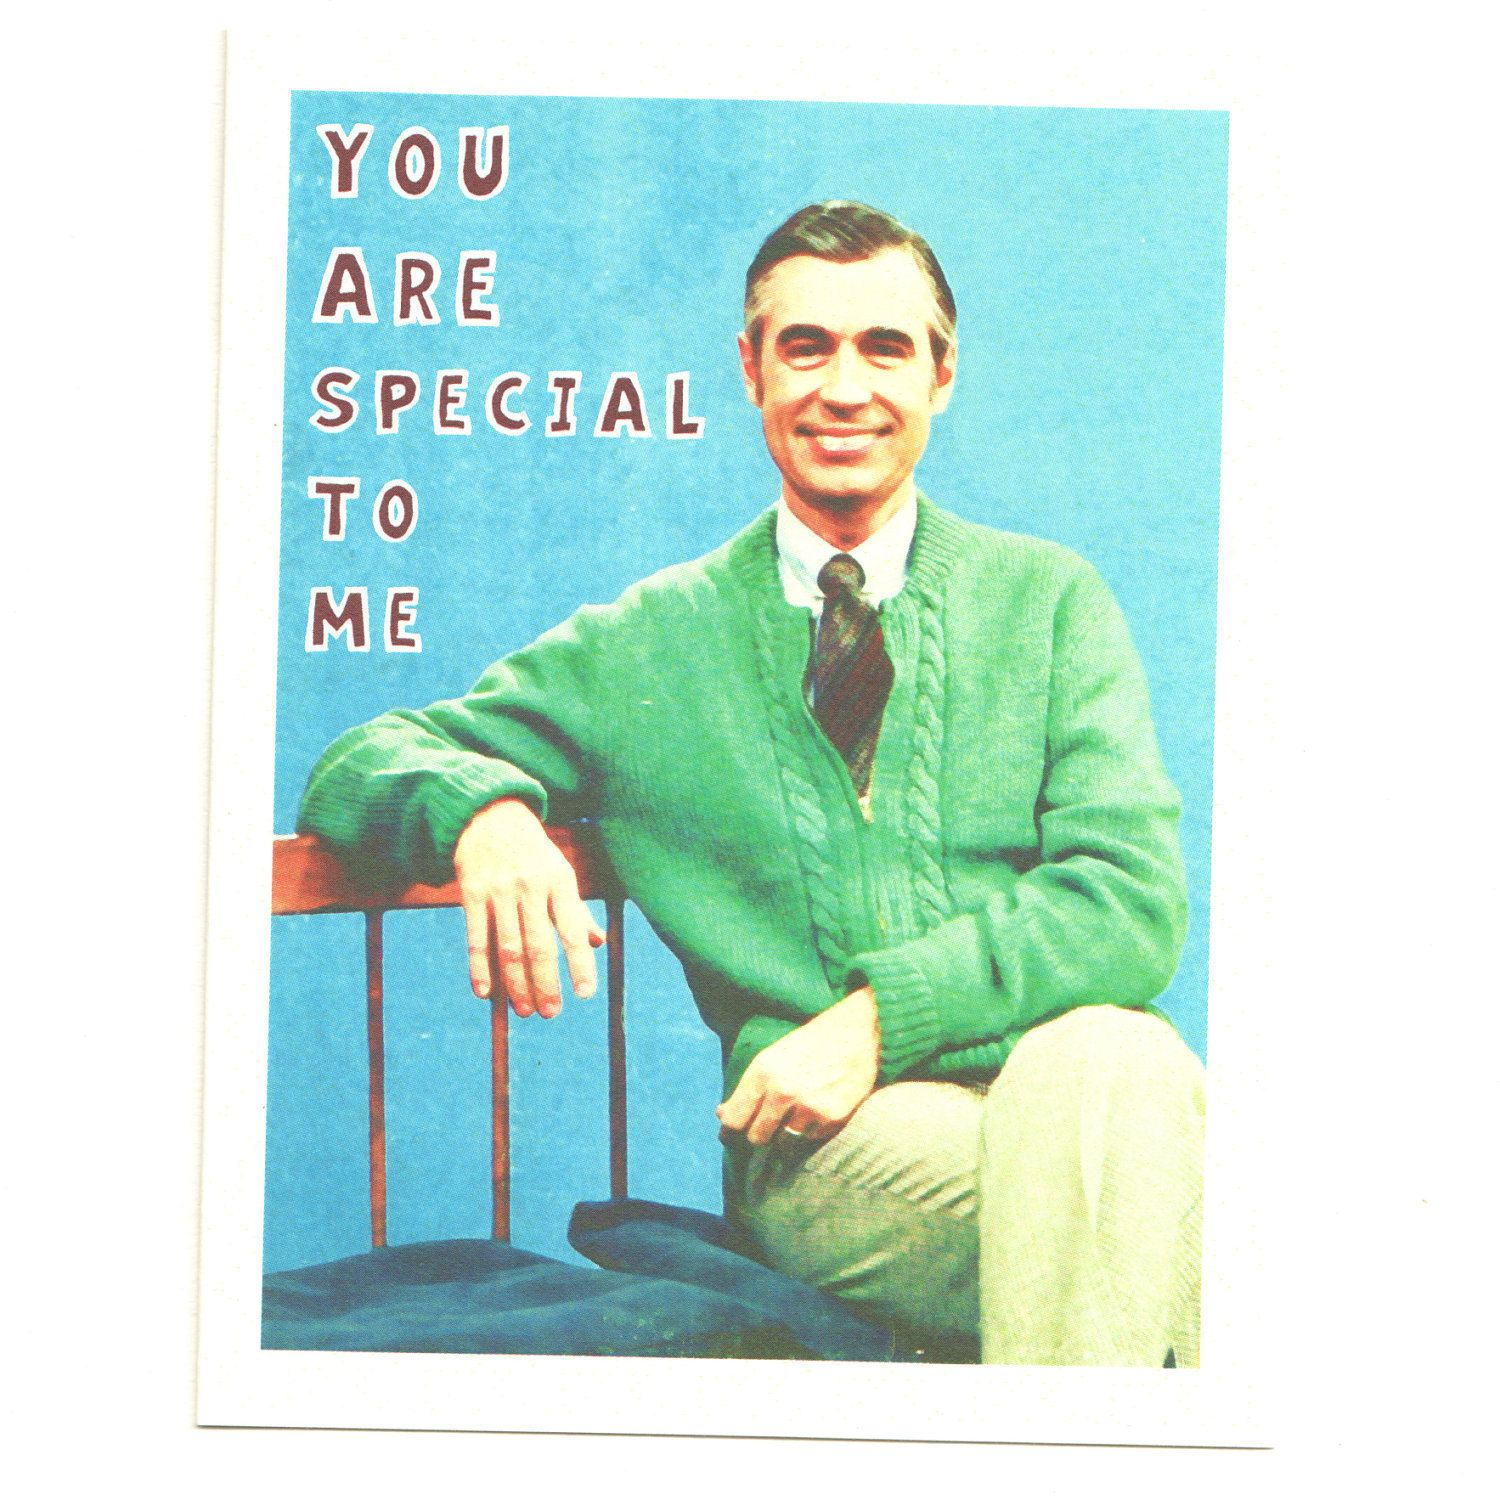 Mister Rogers Valentine You Are Special To Me Funny Valentine Card 3 75 Via Etsy My Funny Valentine Mr Rogers Funny